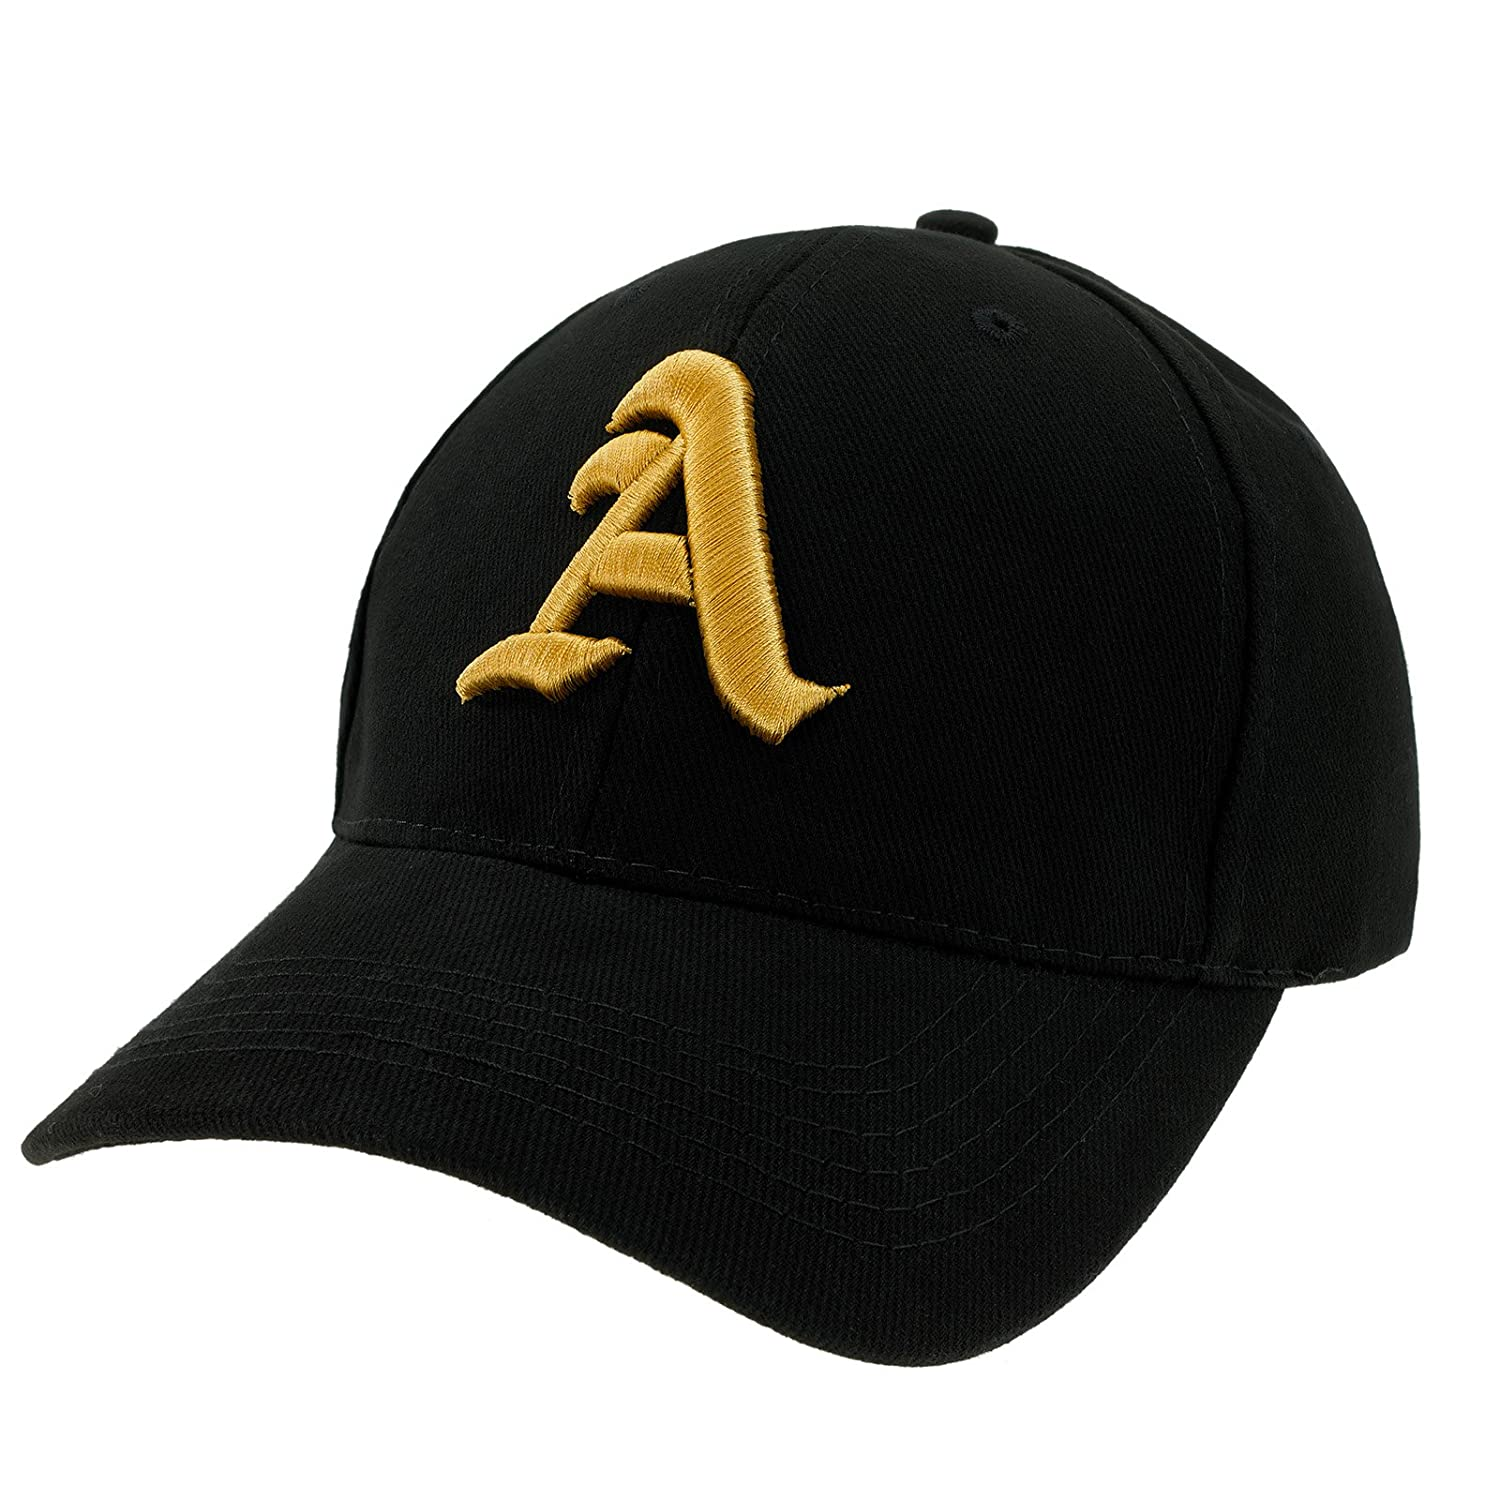 a5be5c81341 Casual Baseball Gothic B Letter Cap Caps Snap Back Hat Hats Snapback  Trucker Cap Headwear (Black A Gold)  Amazon.co.uk  Clothing